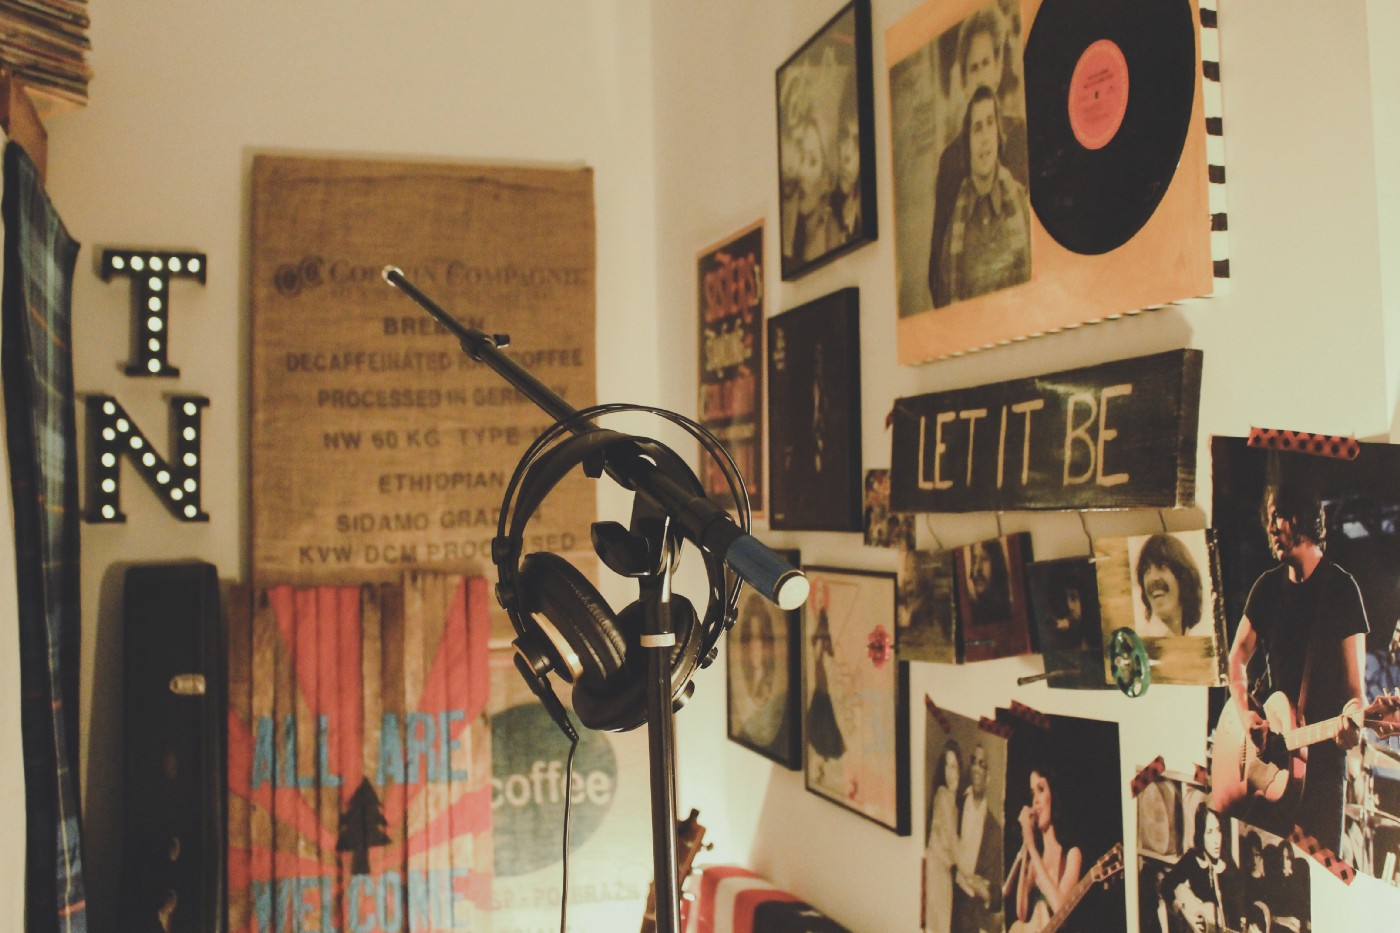 Music equipment in a room full of posters.